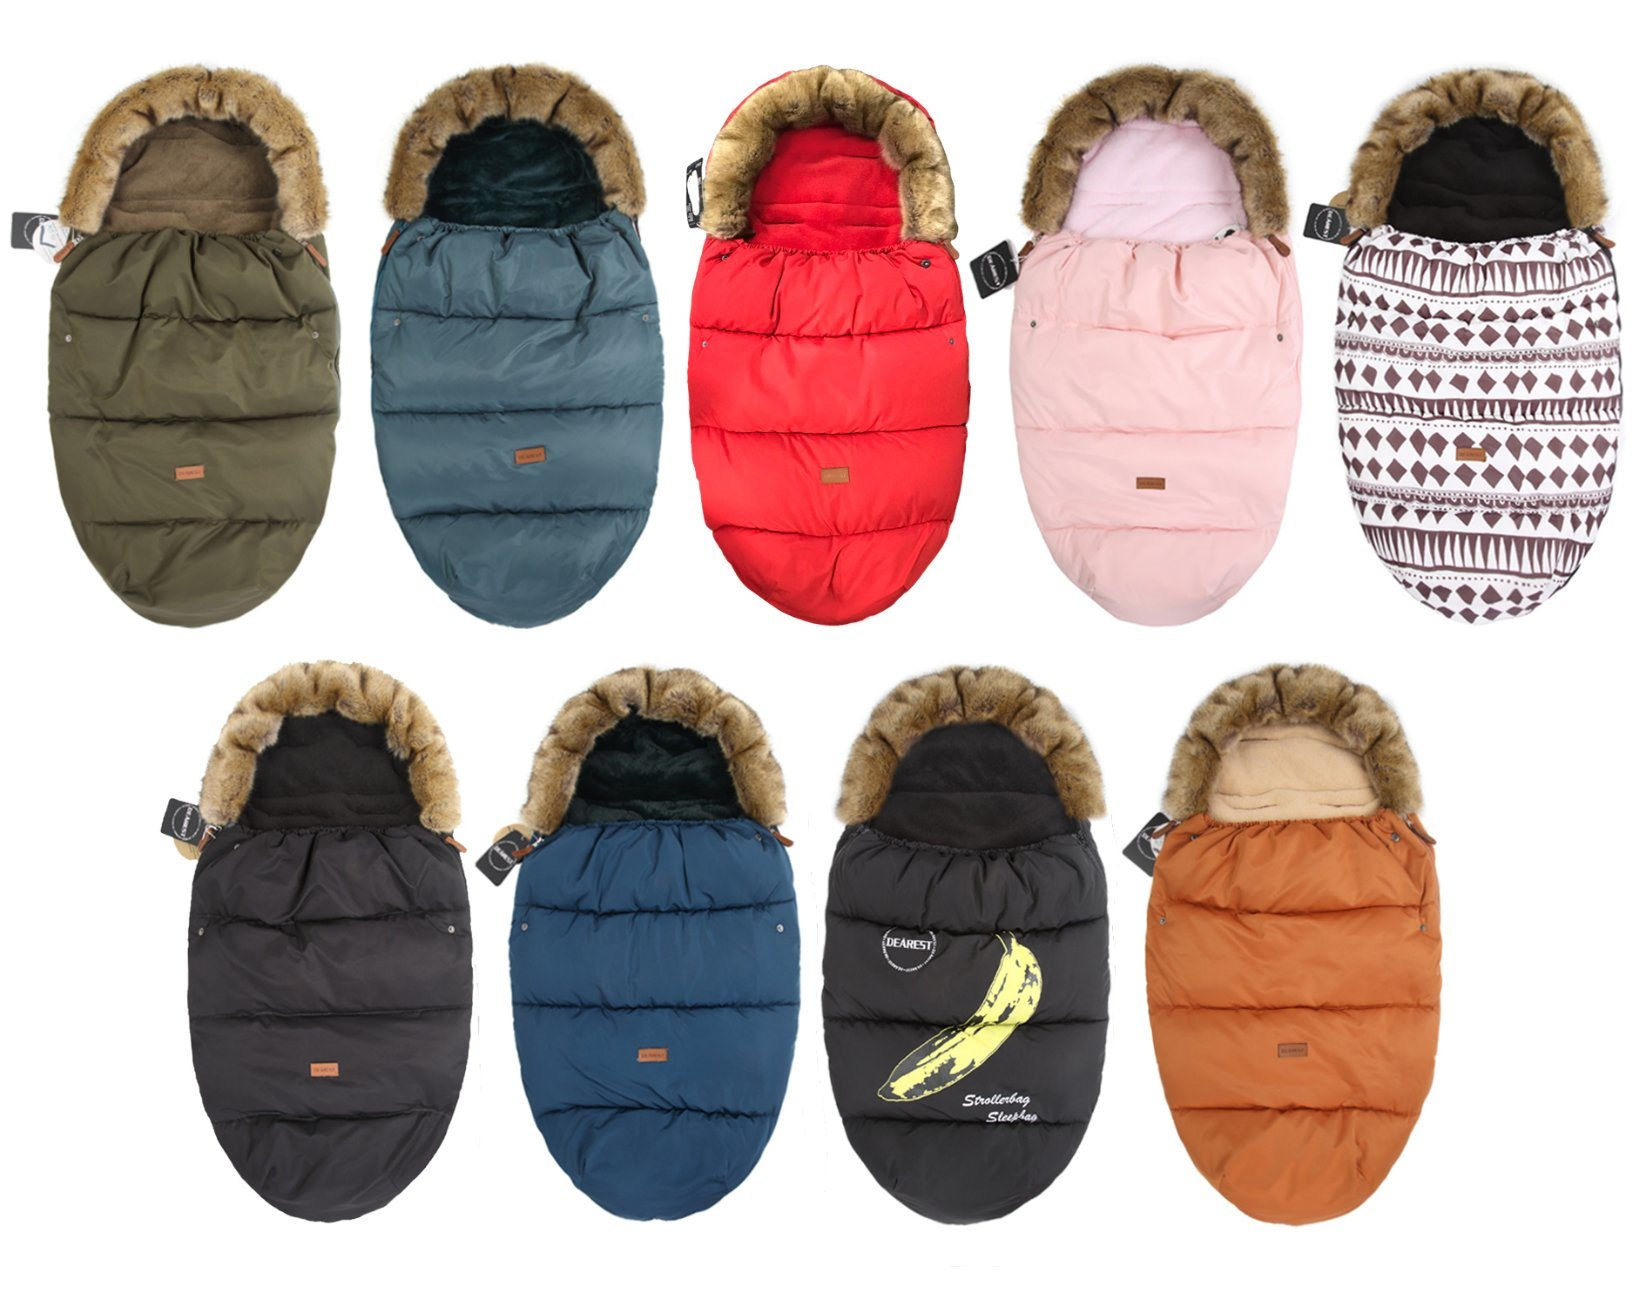 Baby Warm Travel Sleeping Bag, Double Zipper Sleeping Bag, Can Be Taken Apart pictures & photos